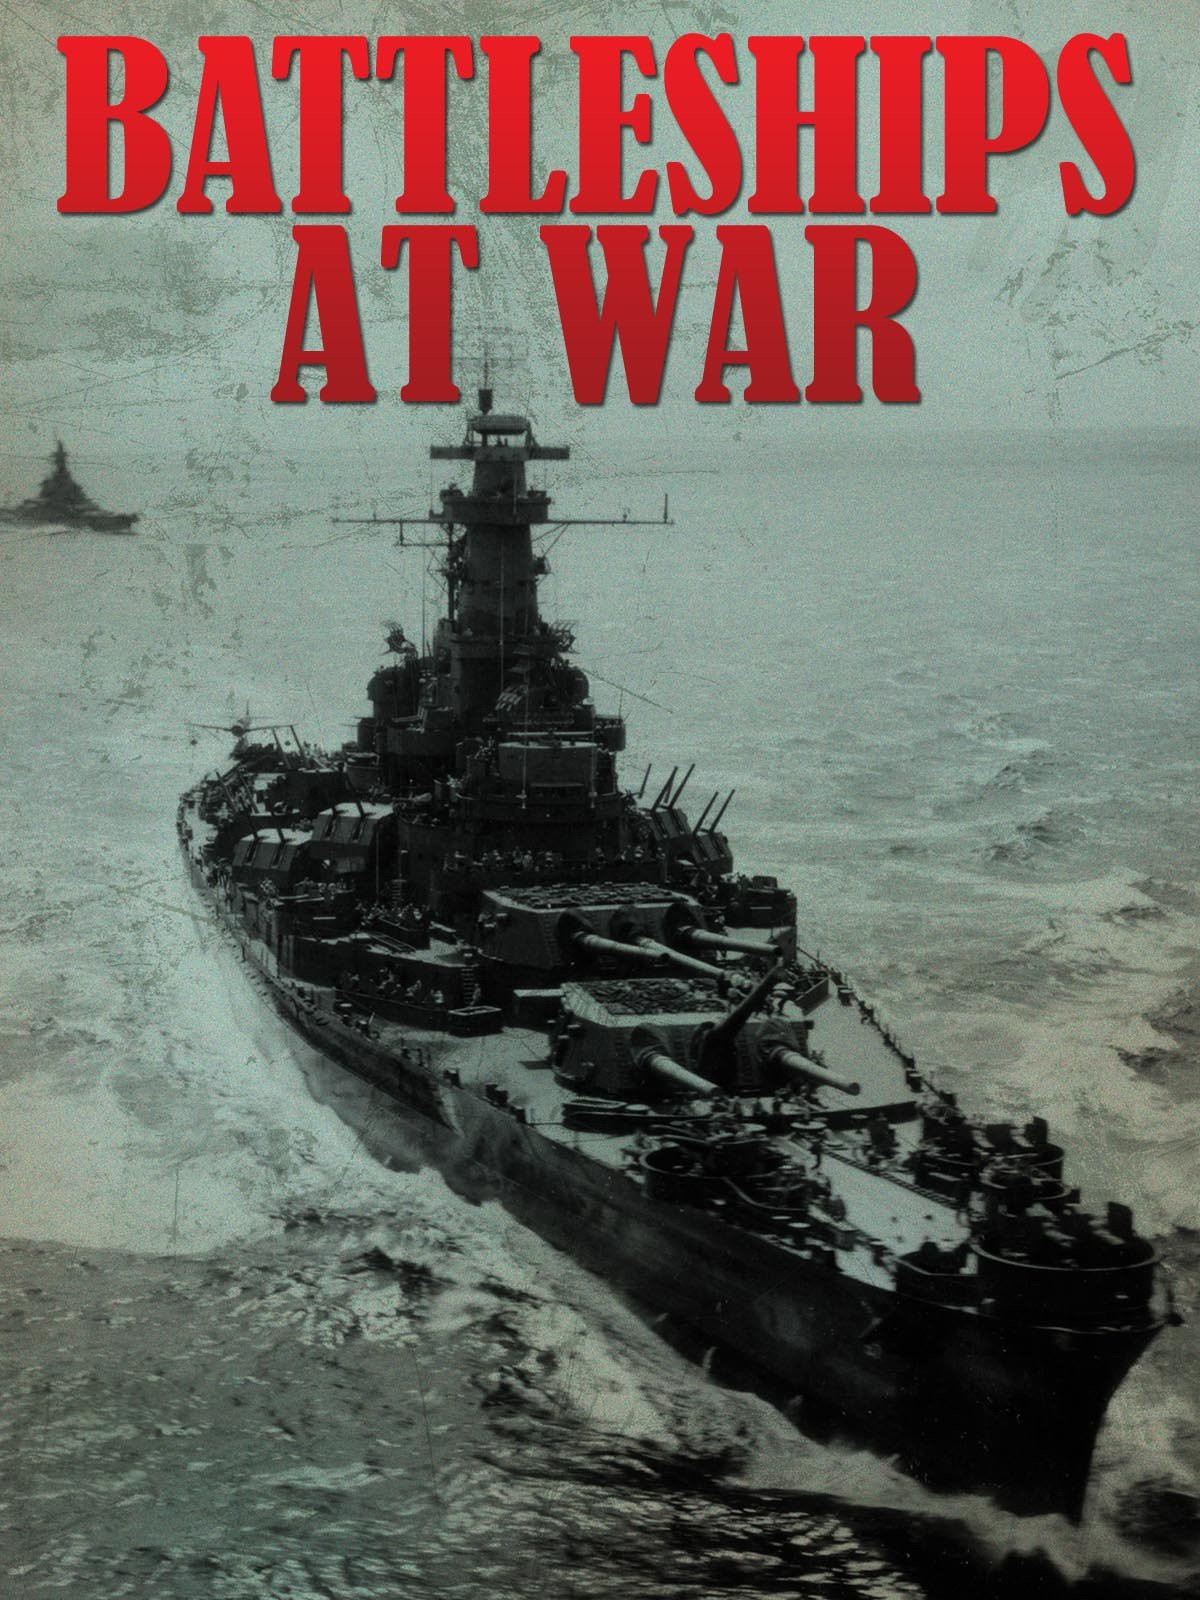 Battleships at War